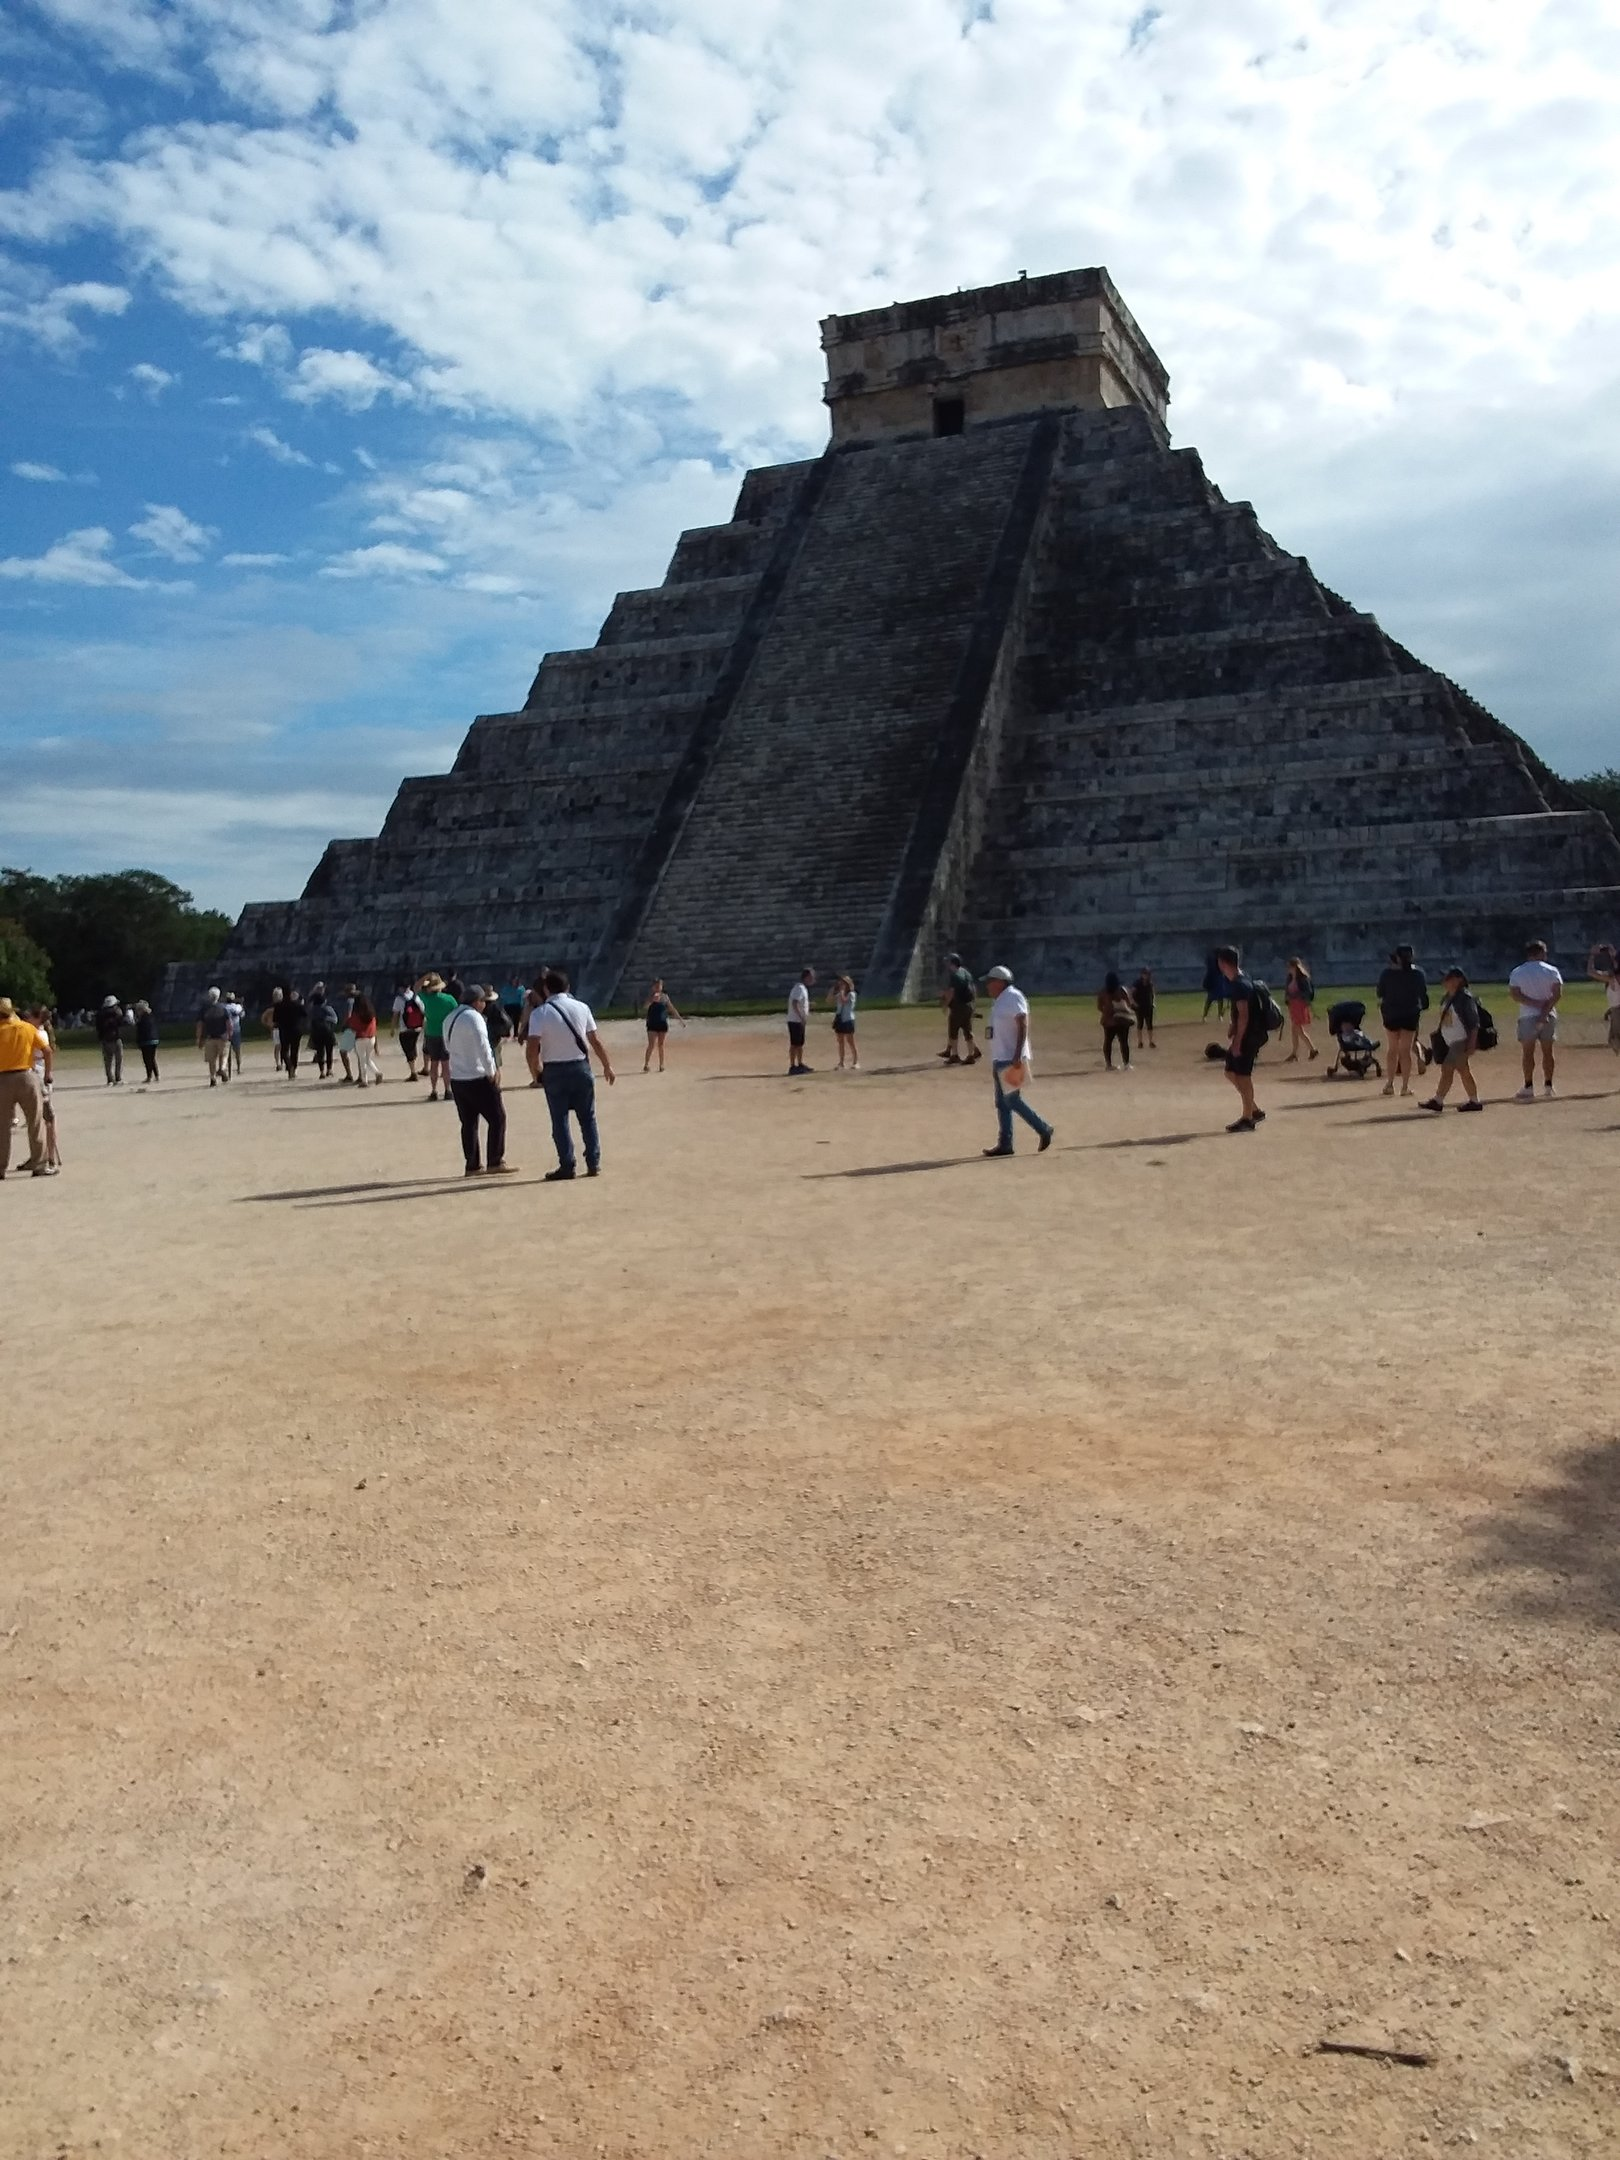 20181224_075905-jpg.48199_Chichen Itza (Not So Much a Story Than It Is Pictures)_Travel Stories_Squat the Planet_4:02 PM